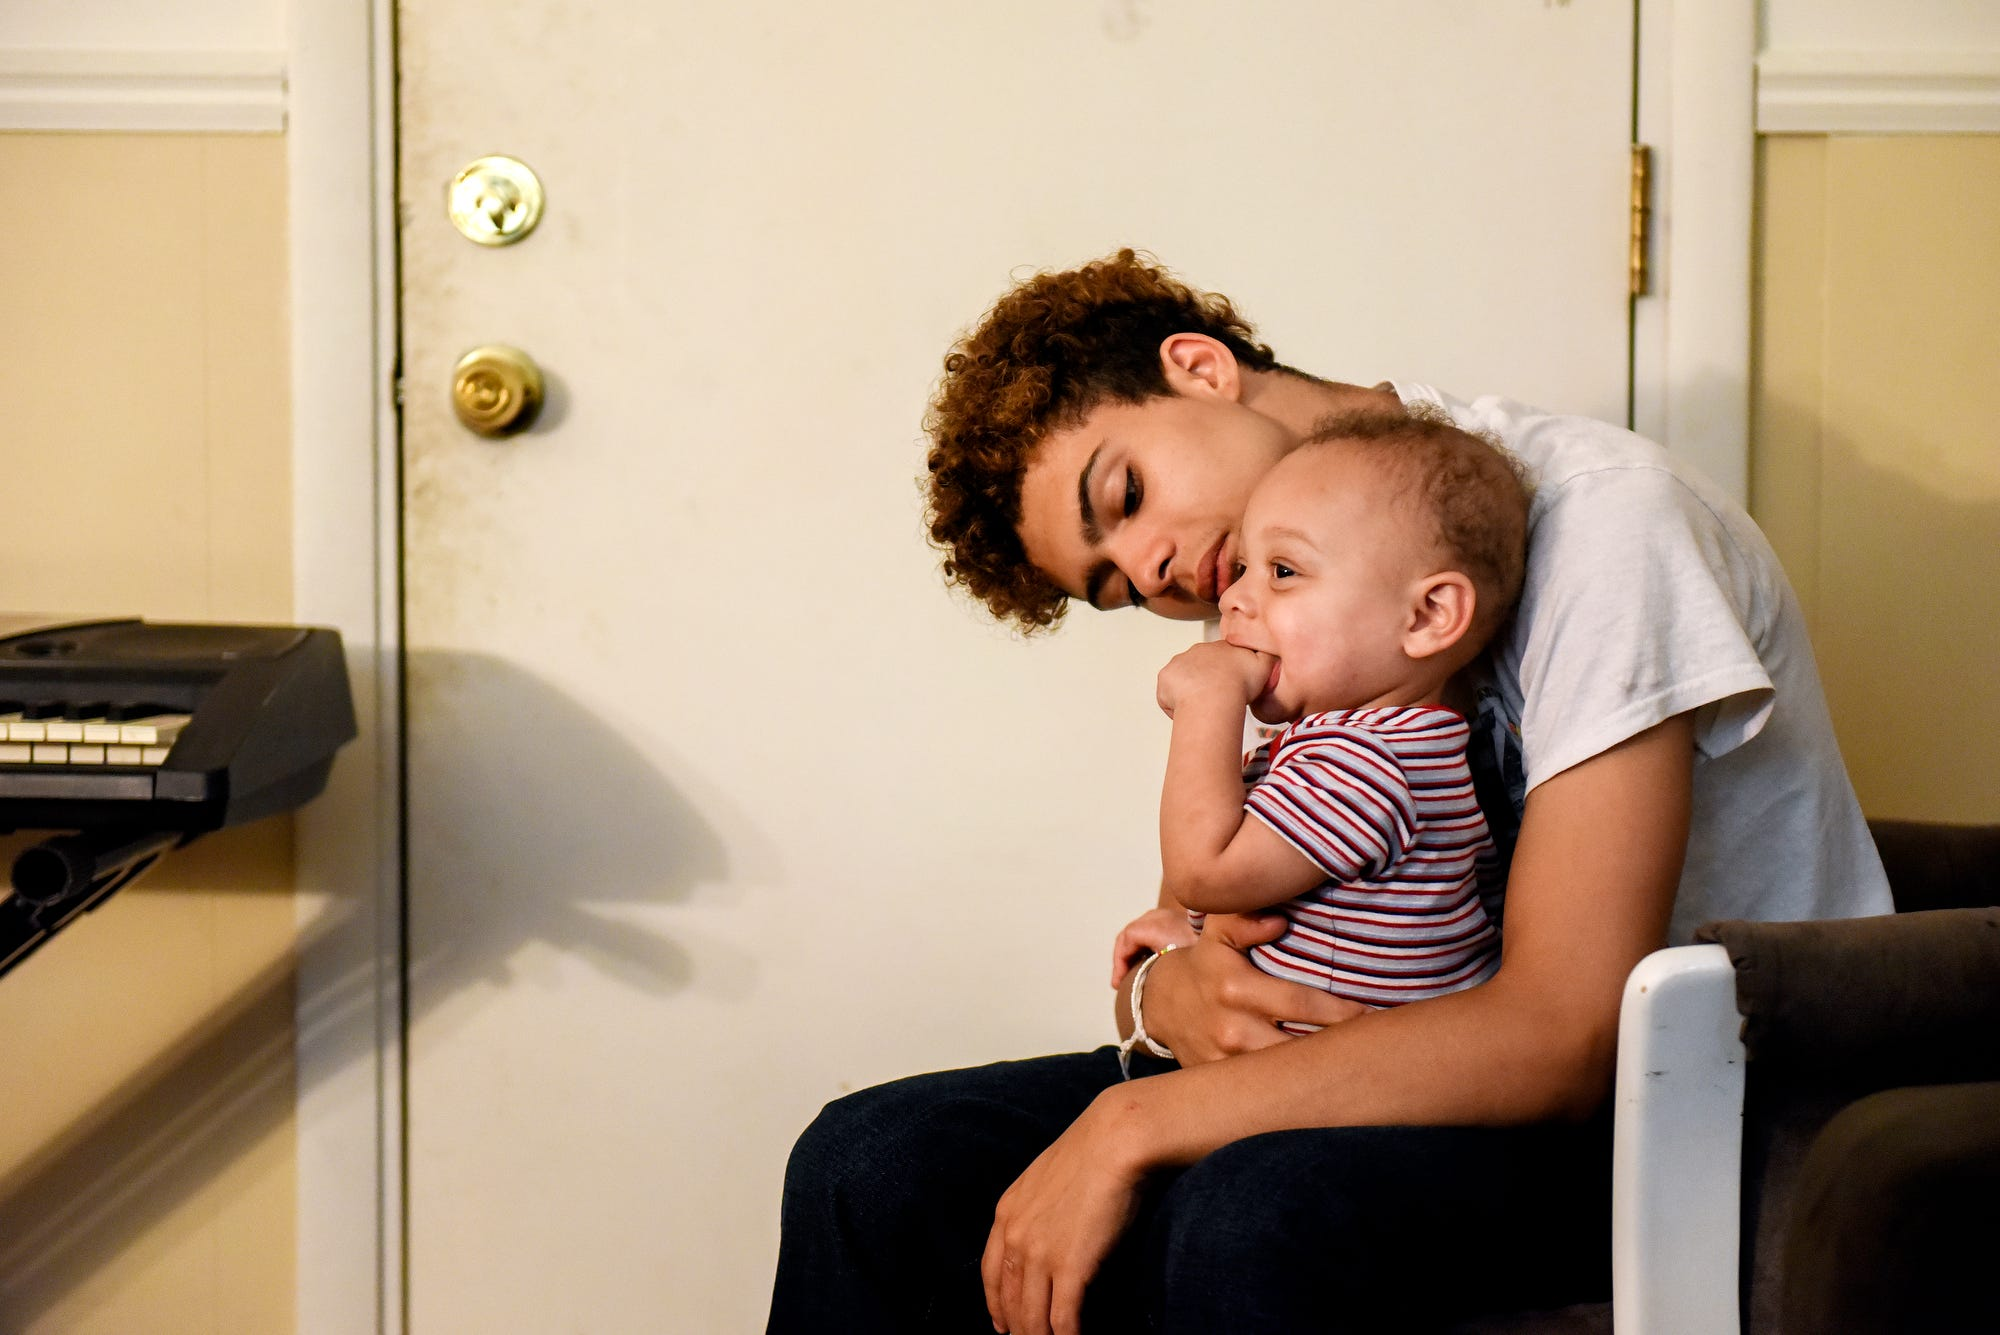 Lazarus Meissner, right, spends time with his 13-month-old son Jaylen Gomez-Meissner at their home on Friday, July 26, 2019, in Lansing.